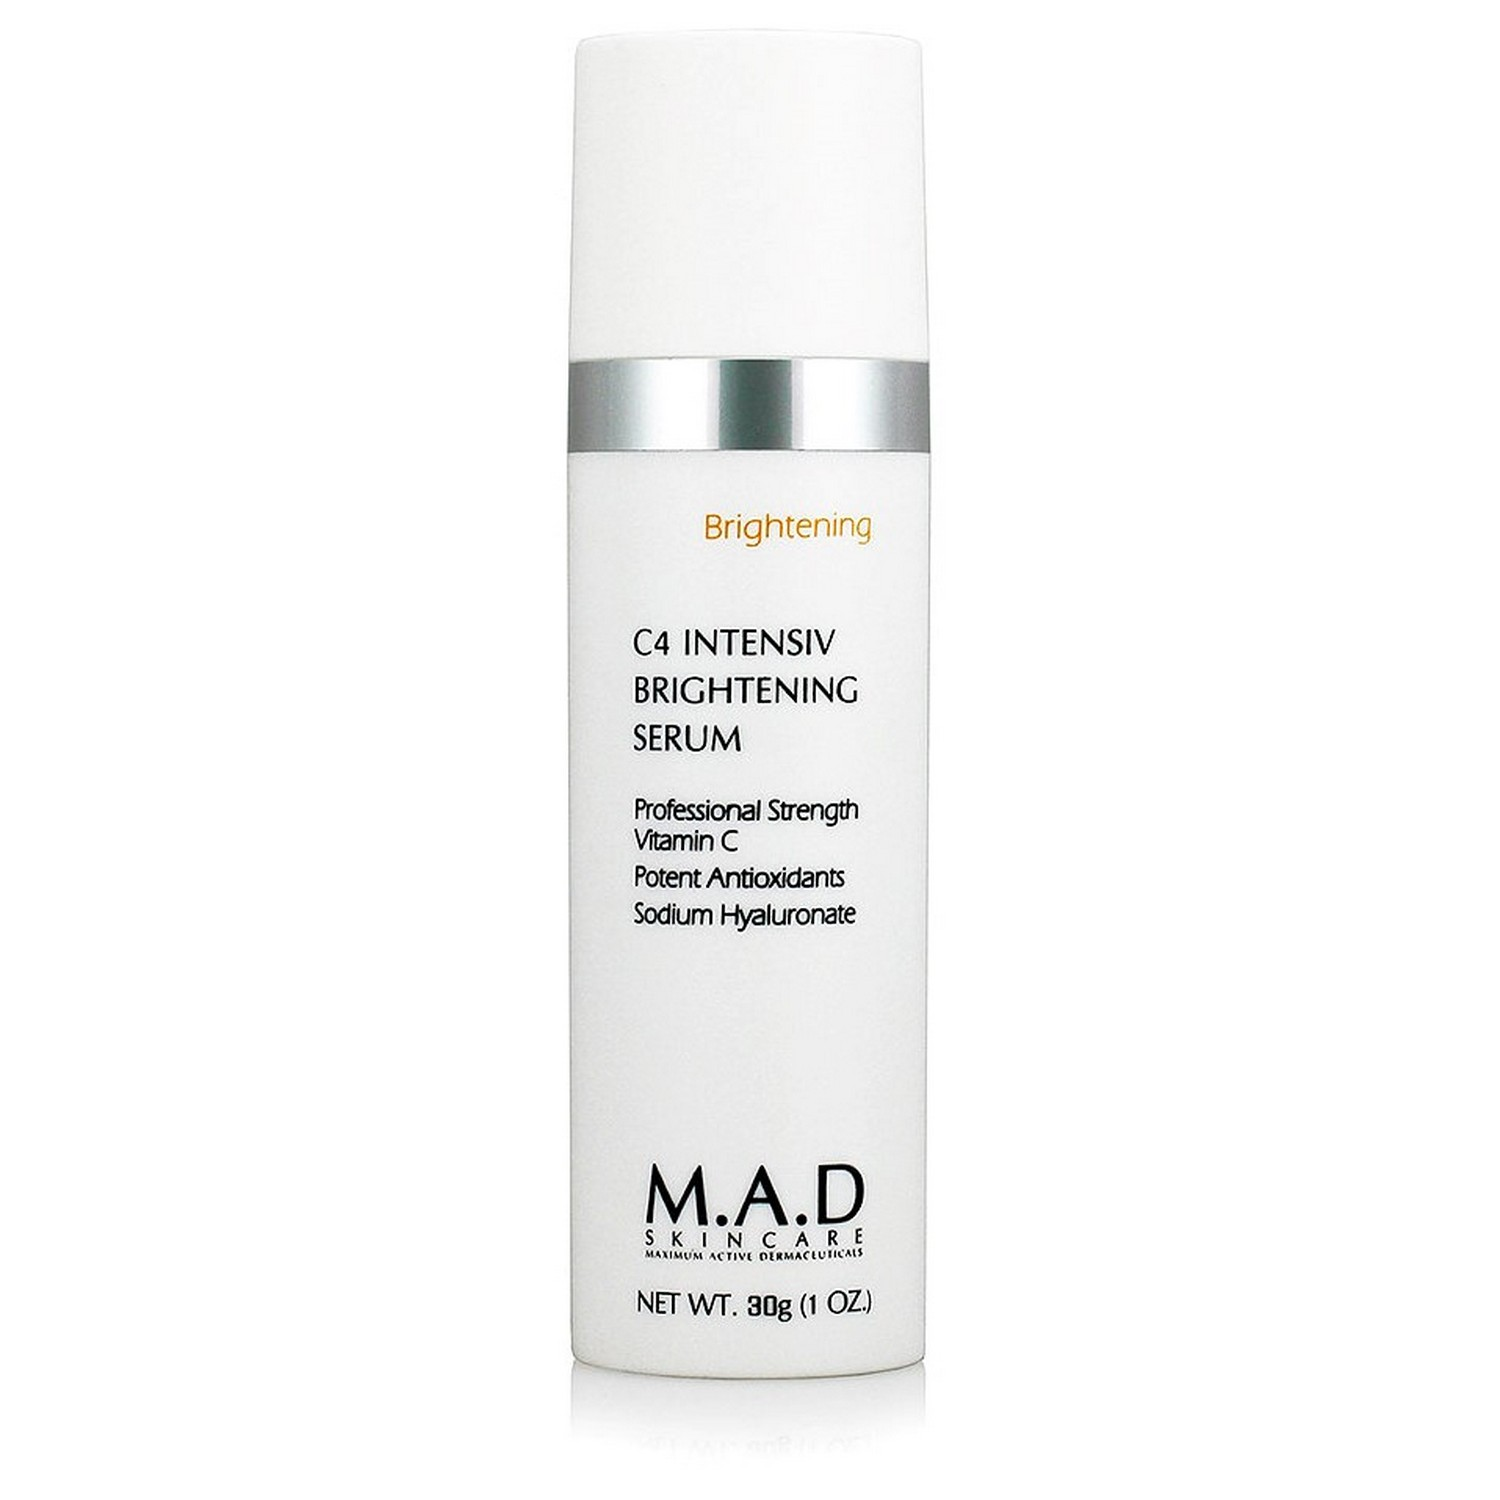 M.A.D SKINCARE C4 INTENSIV BRIGHTENING SERUM (30 g / 1.0 oz)